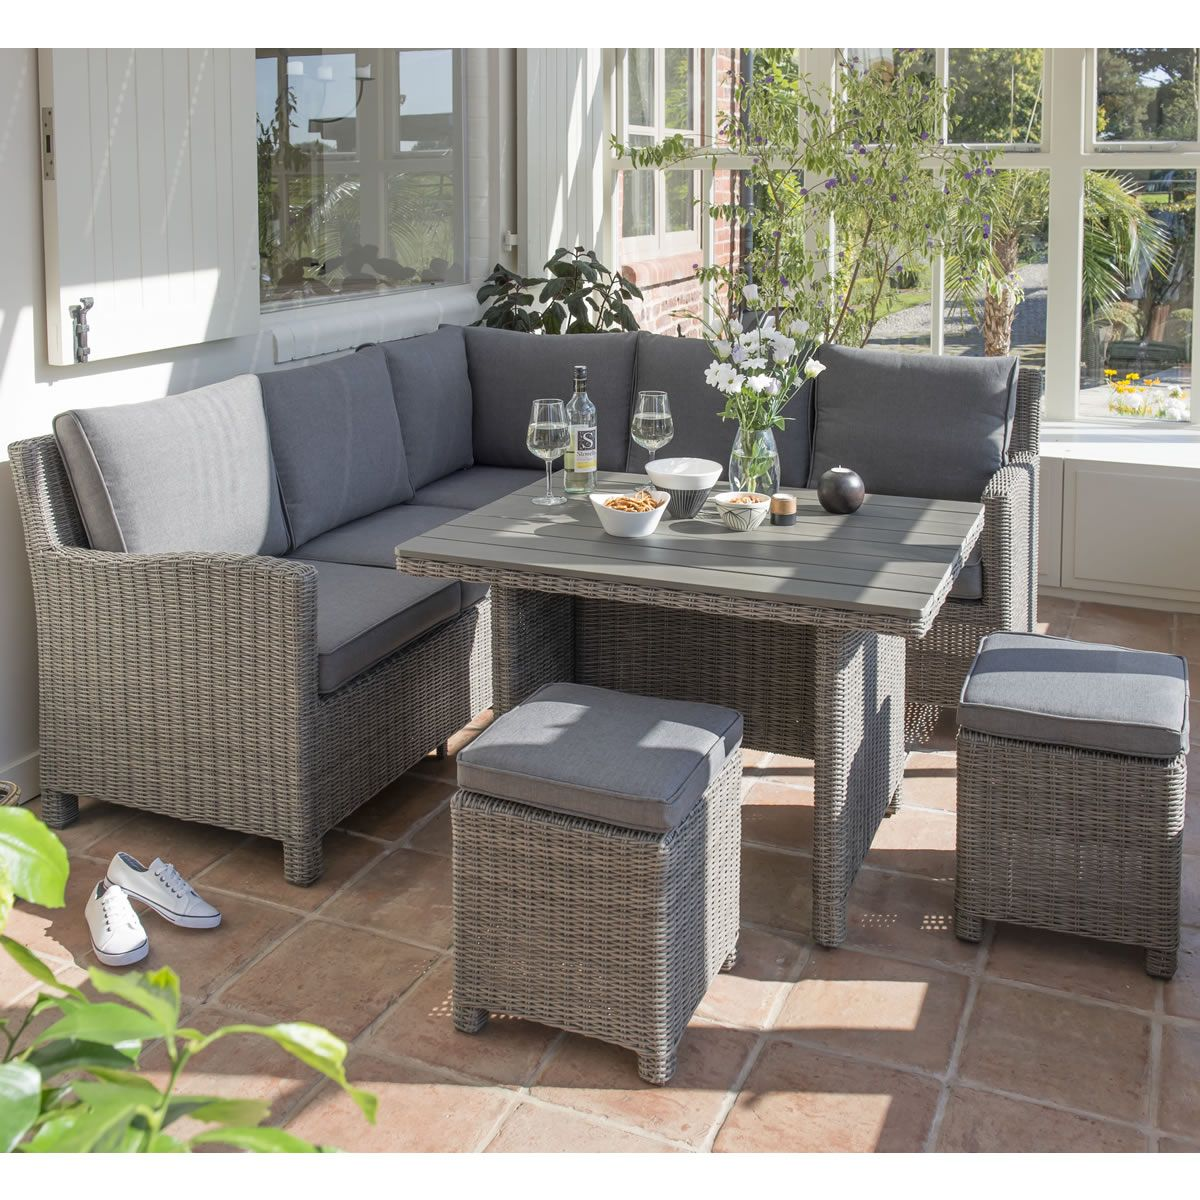 Kettler Palma Mini Corner Set Rattan (Slat Top Table